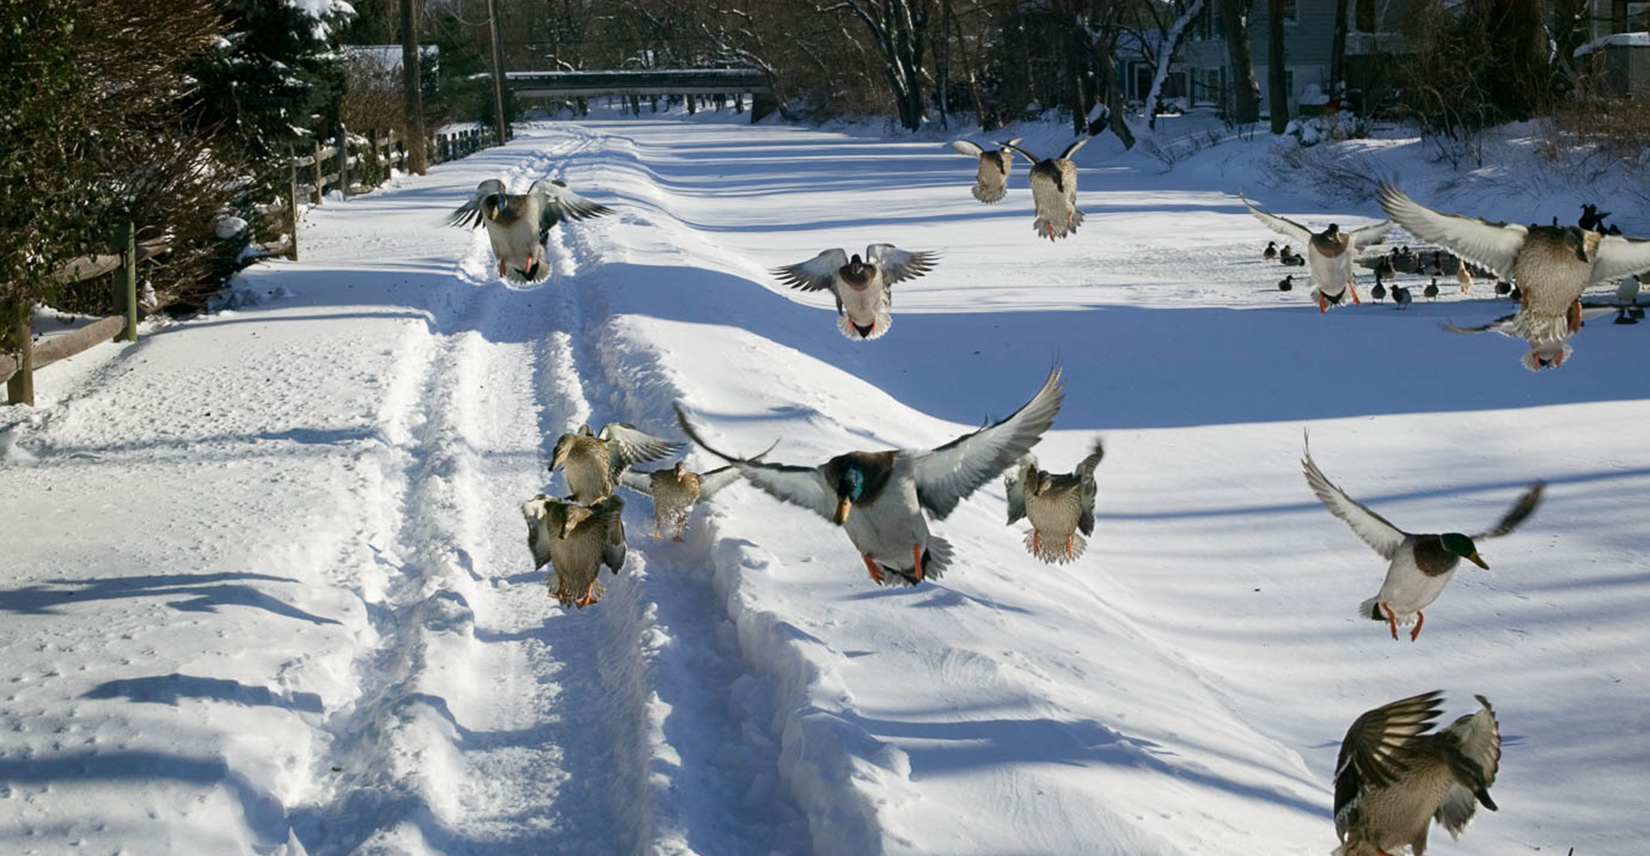 look at the birds taking off